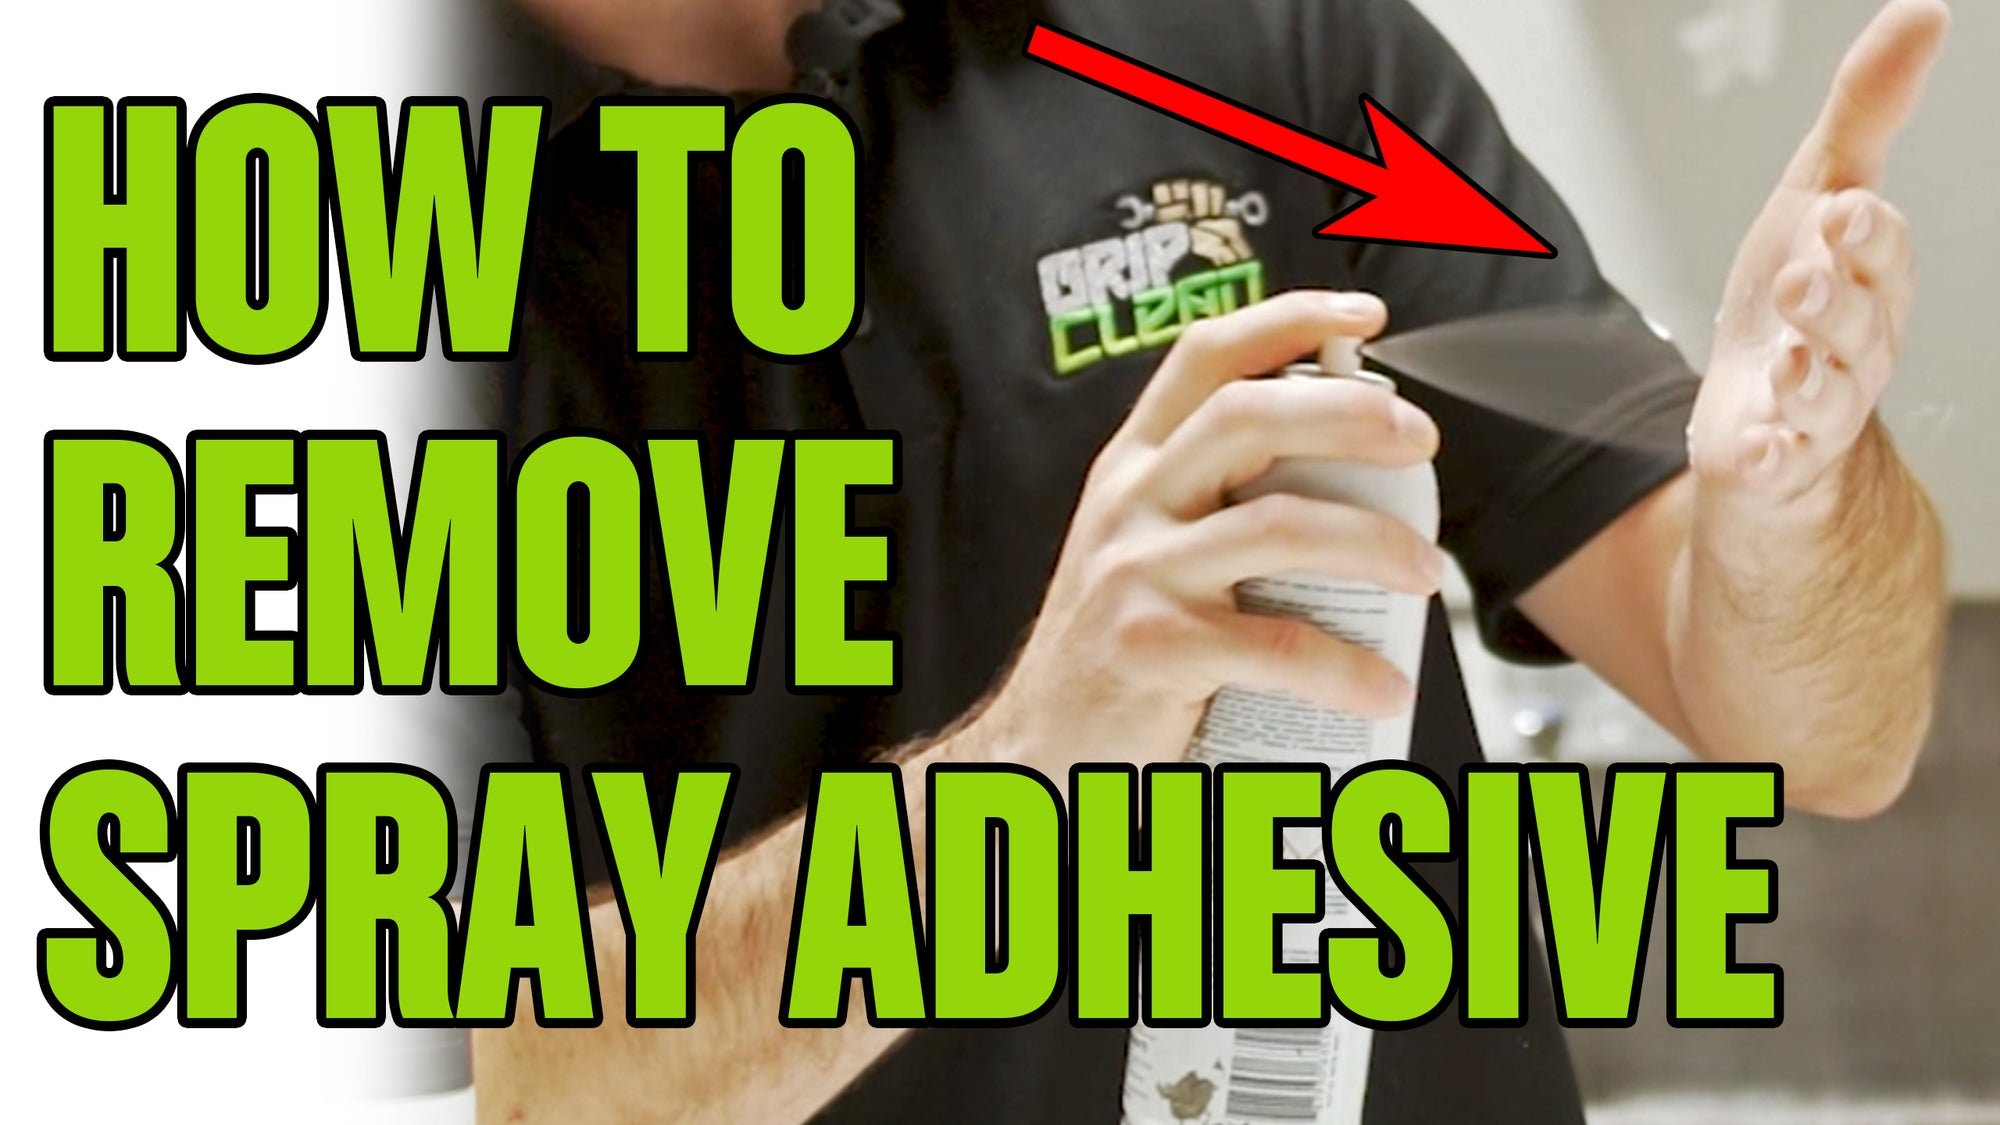 HOW TO REMOVE: Spray Adhesive From Your Hands